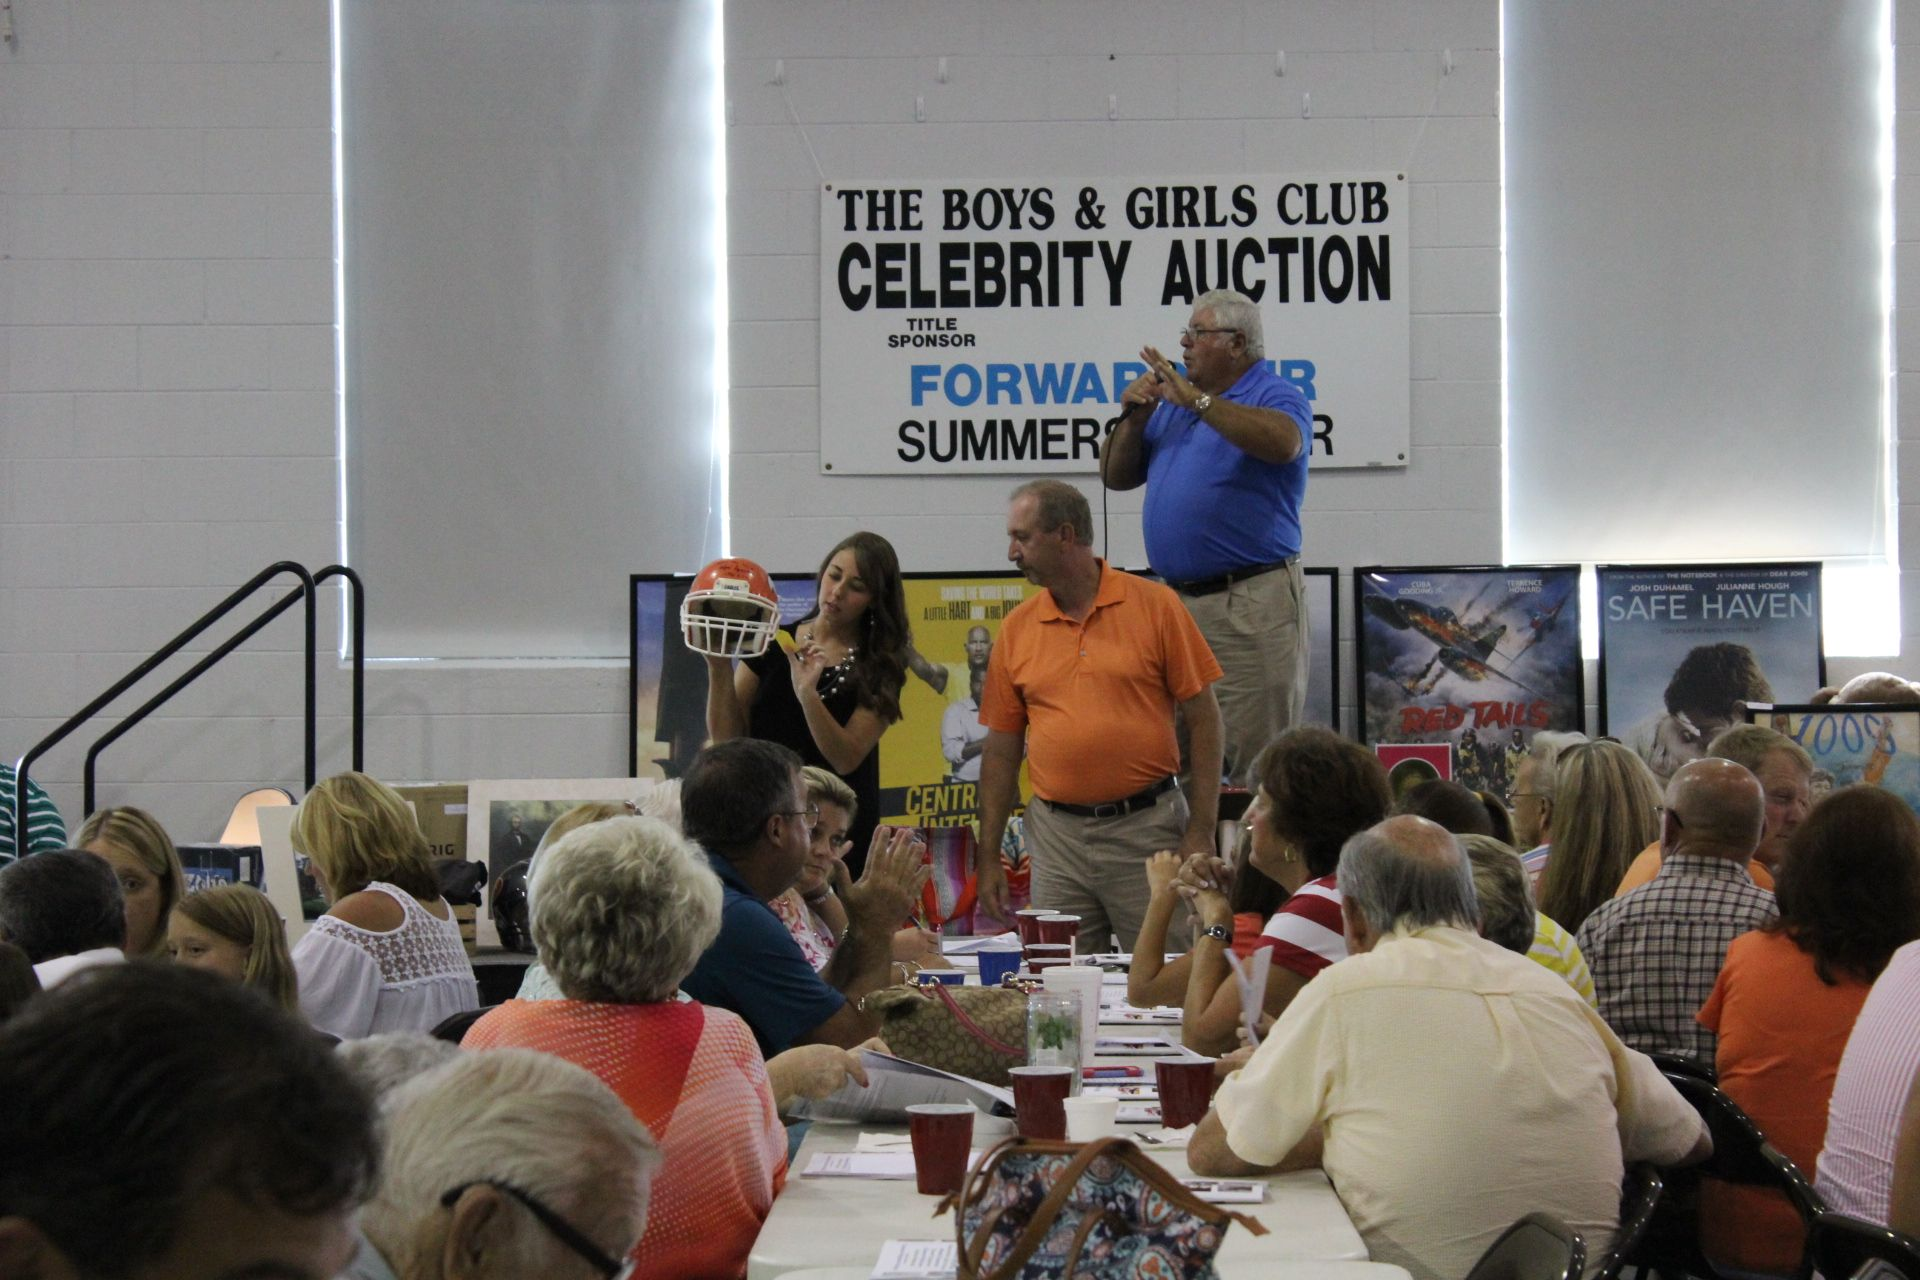 Eddie Yokley works for bids on this autographed football helmet from ken Sparks of Carson Newman during the Boys & Girls Club celebrity Auction held in August 2016 at Trinity United Methodist Church in Greeneville, Tennessee